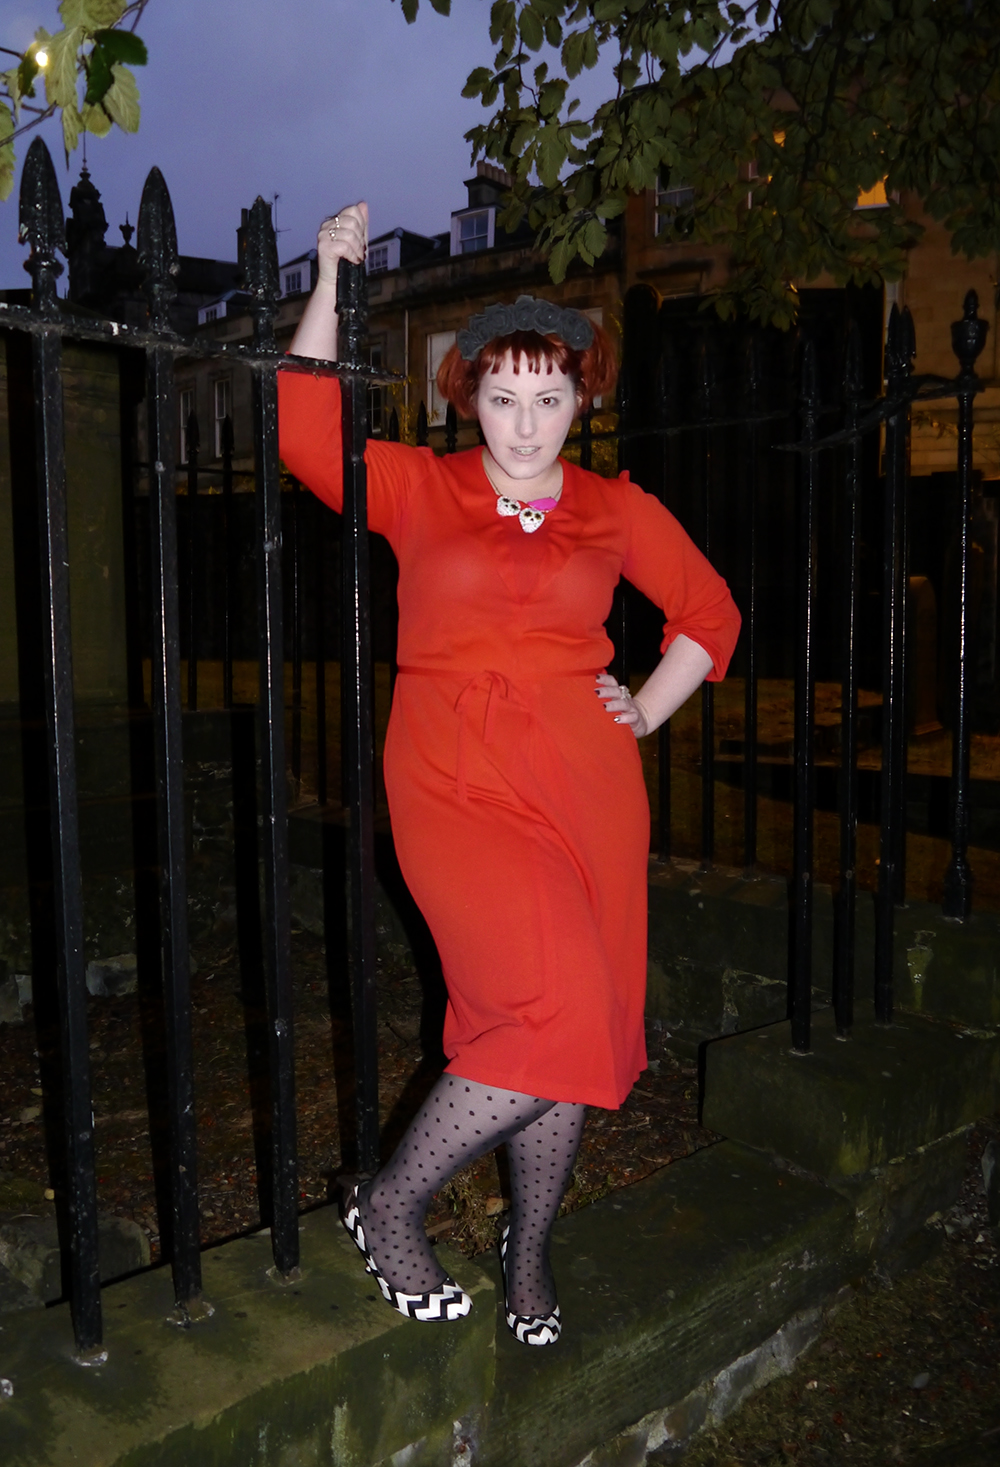 unlikely horror icon, unlikely style icon, Lydia Deetz from Beetlejuice, Halloween costume inspiration, easy Halloween costume, Halloween costume ideas, Beetlejuice costume, red dress costume, red vintag dress, Kitsch Kitty sugar skull necklace, Irregular Choice zig zag heels, Crown & Glory black flower crown, Wardrobe Conversations, Scottish Blogger, Edinburgh graveyard, Halloween inspiration, horror inspiration, Time Burton style outfit